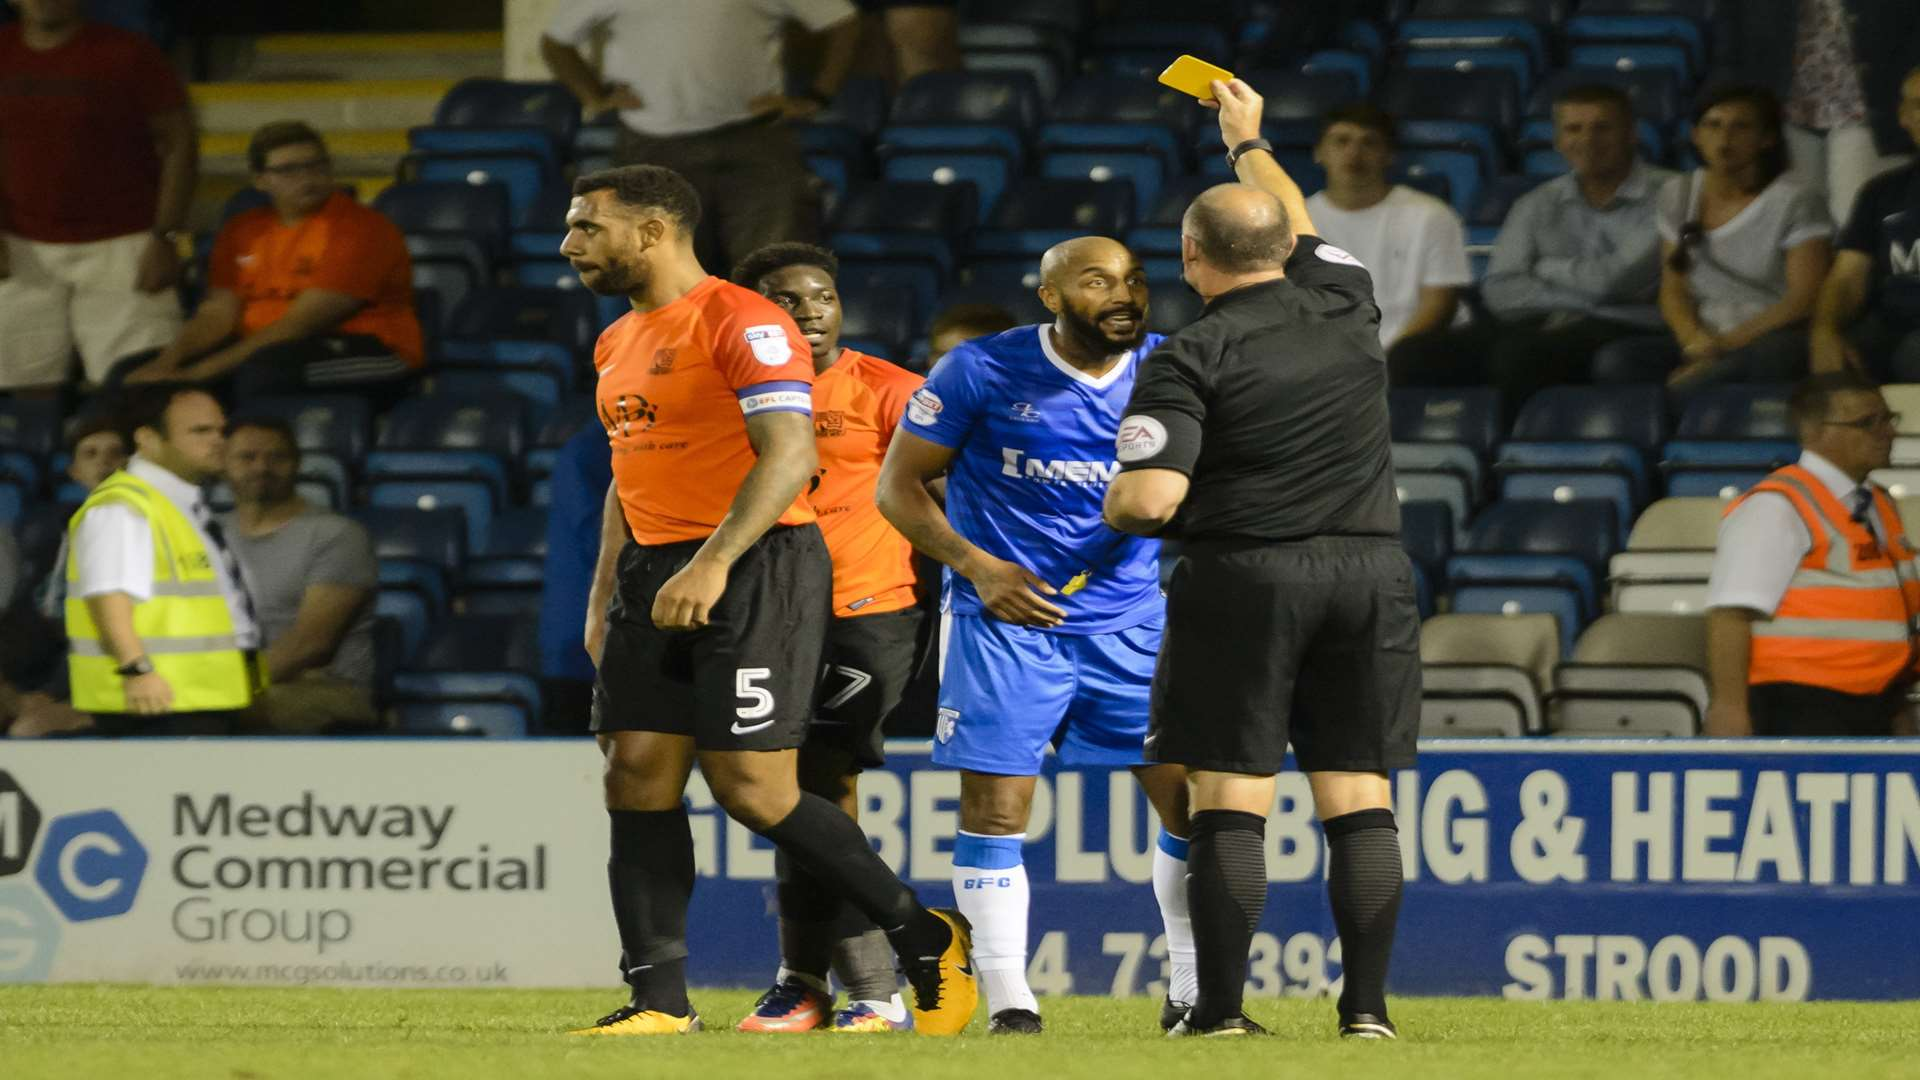 Josh Parker is booked for a foul Picture: Andy Payton